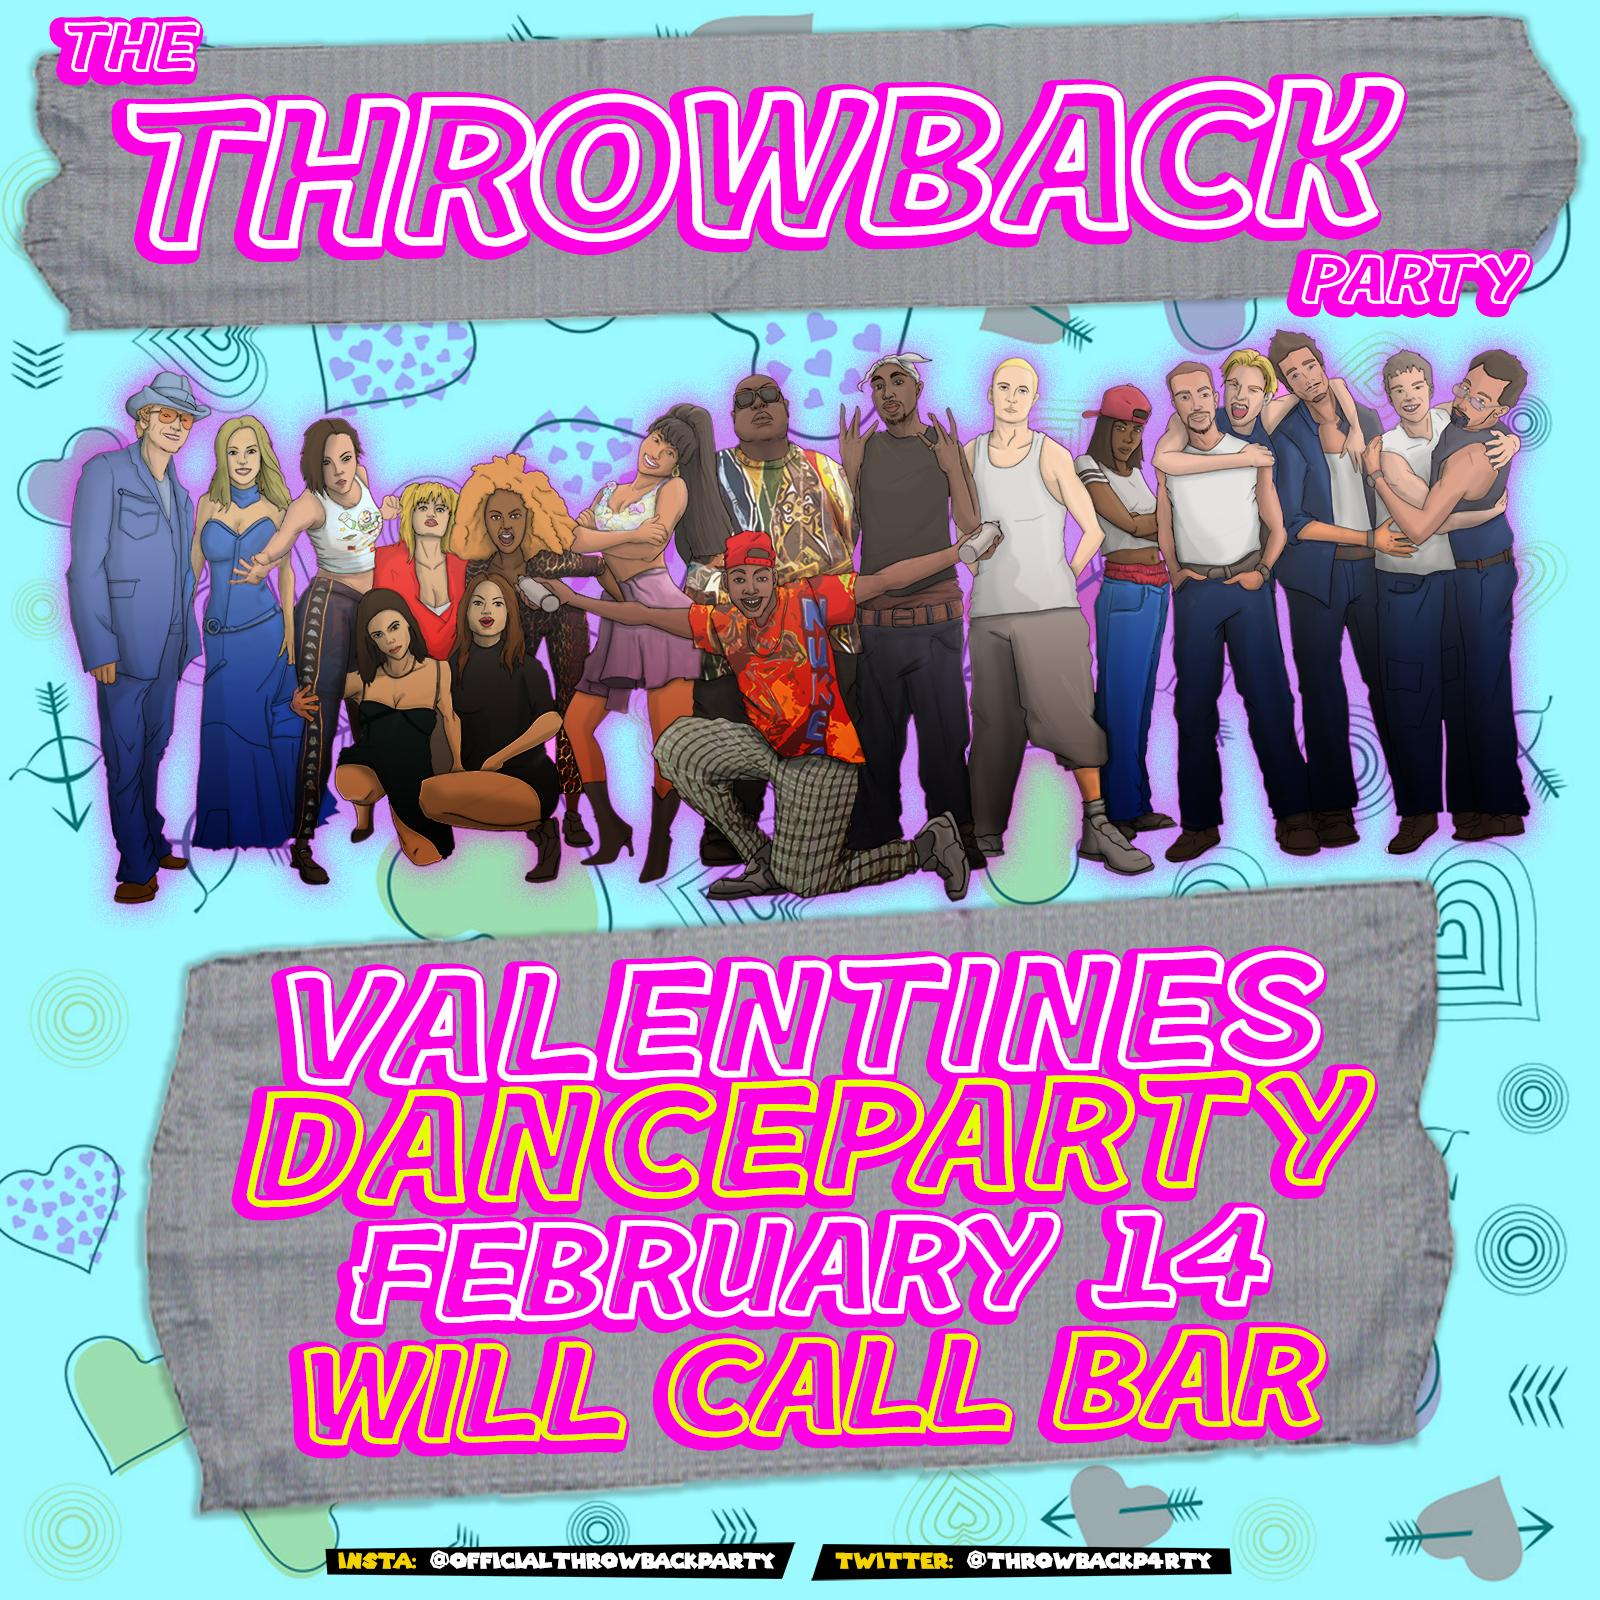 The Throwback Valentine's Dance Party at Will Call